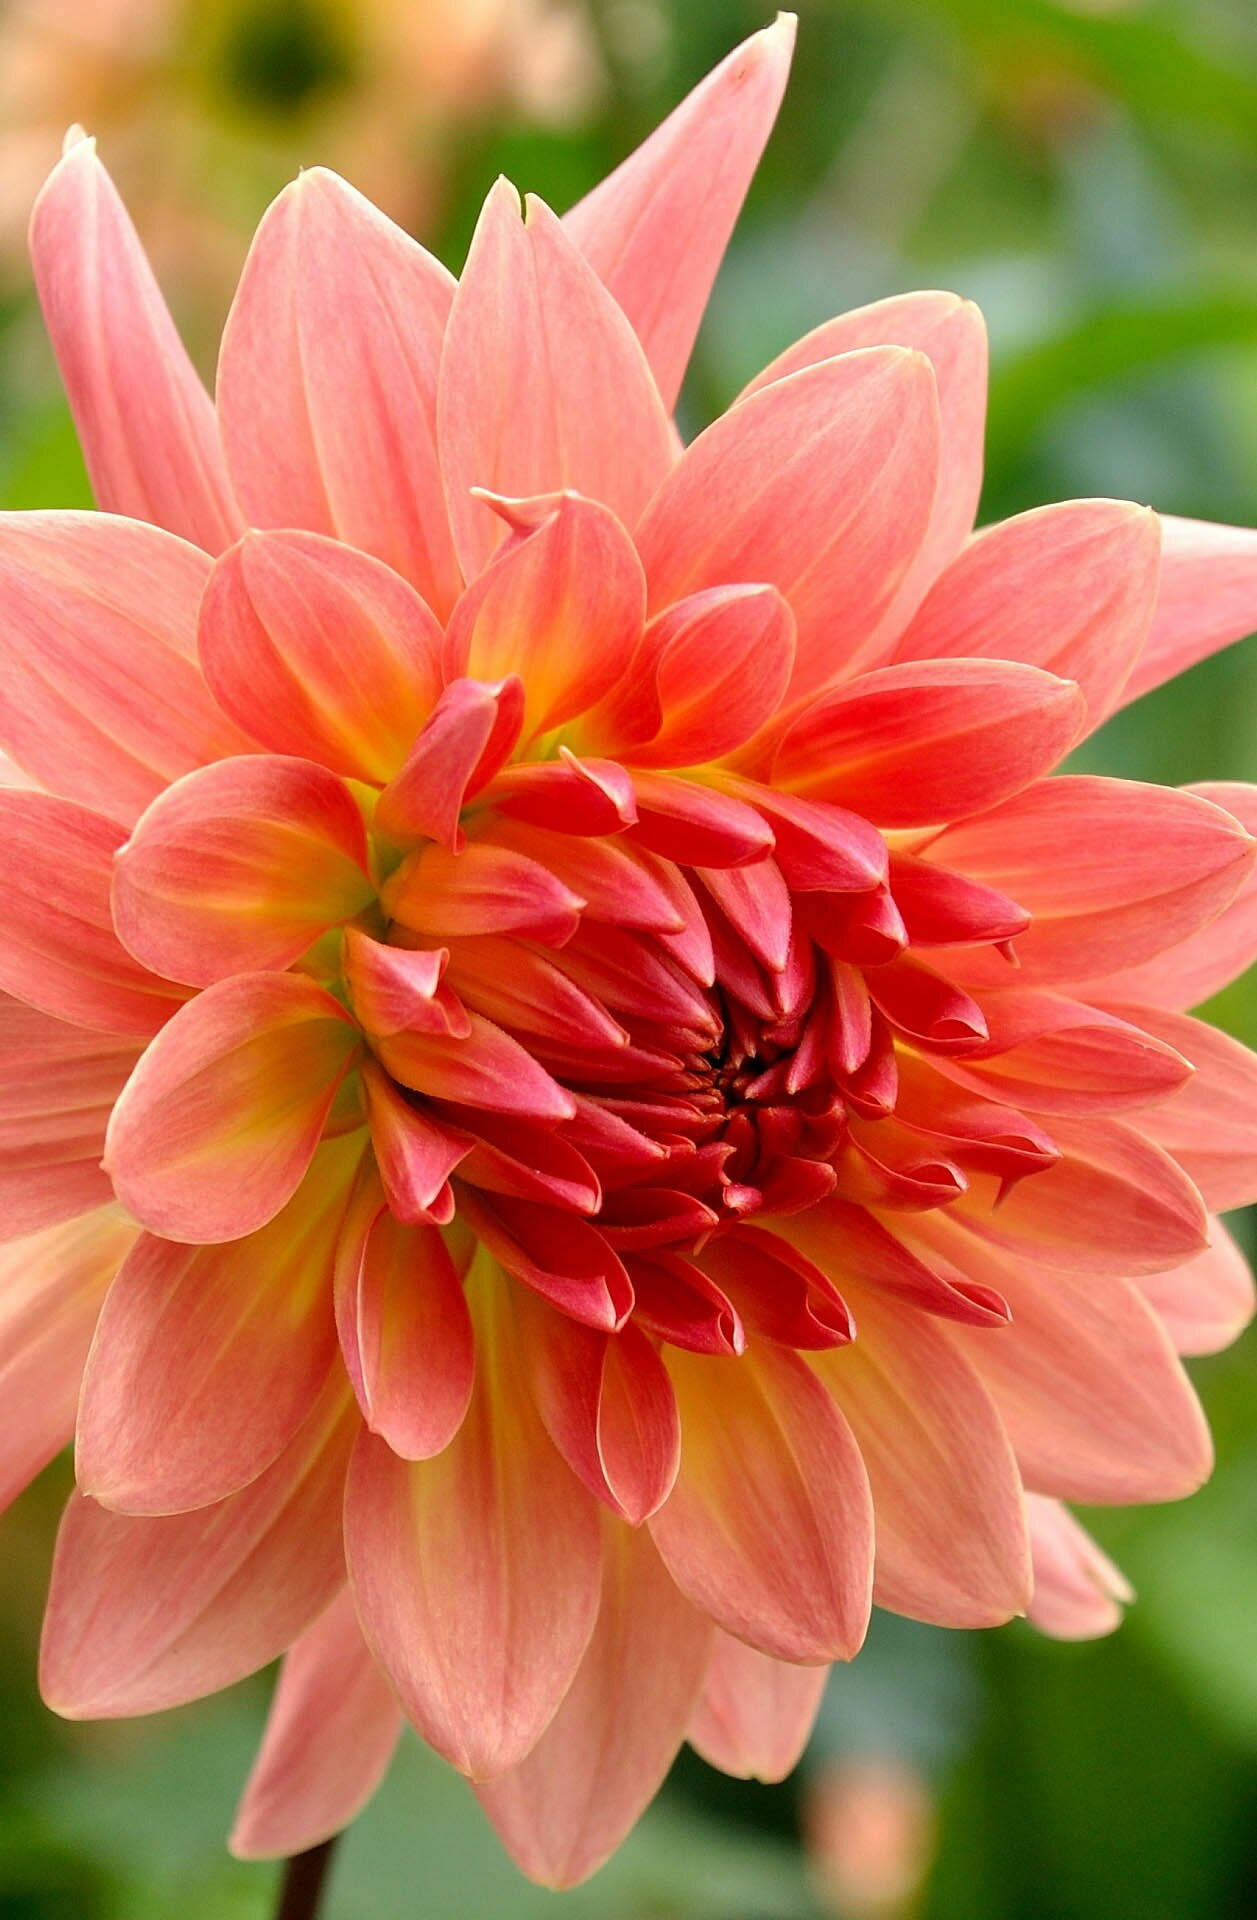 Dahlia flower photo, 35 best flower photos